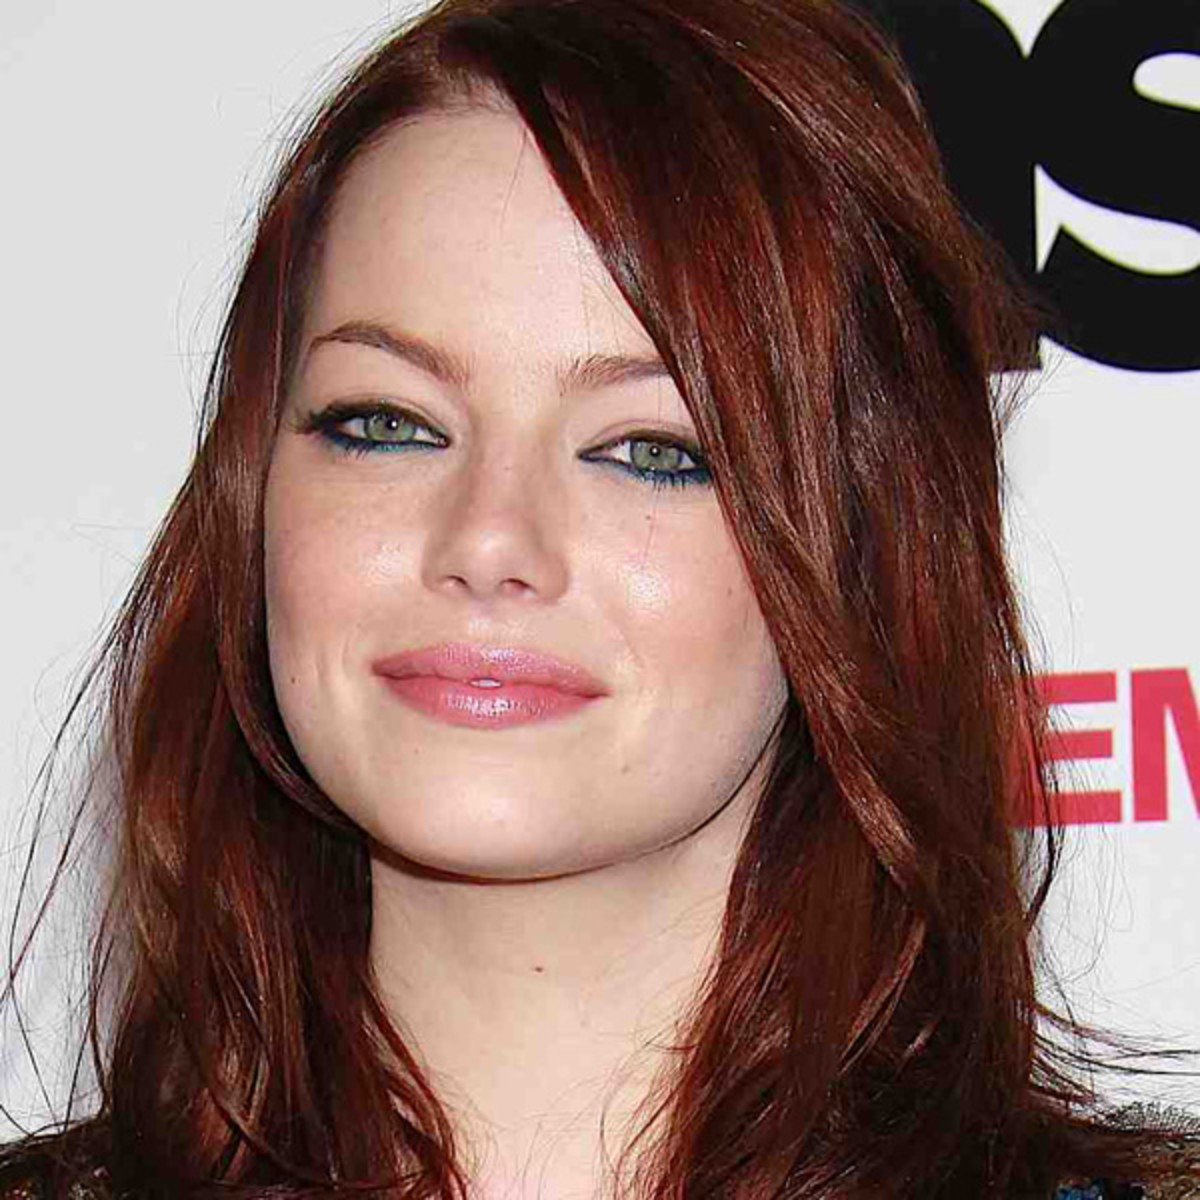 The Best Makeup Tips For Red Hair - Beautyeditor